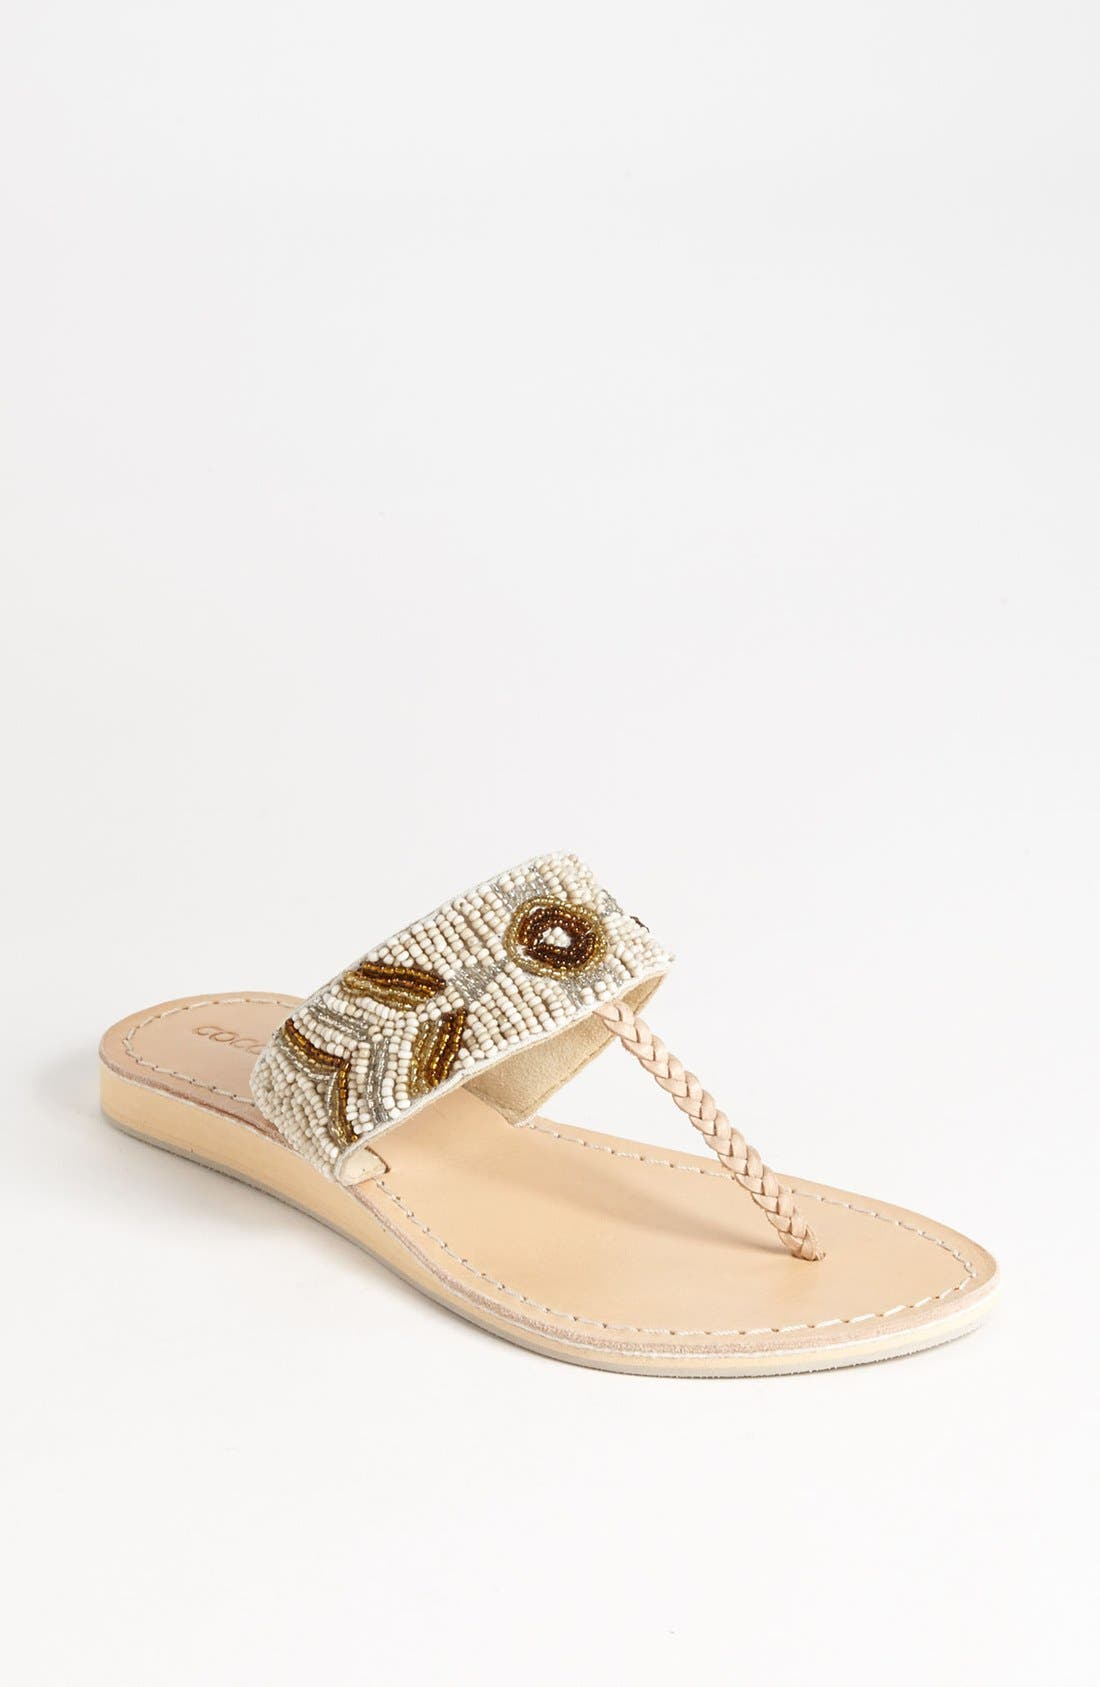 Main Image - Cocobelle 'Native' Sandal